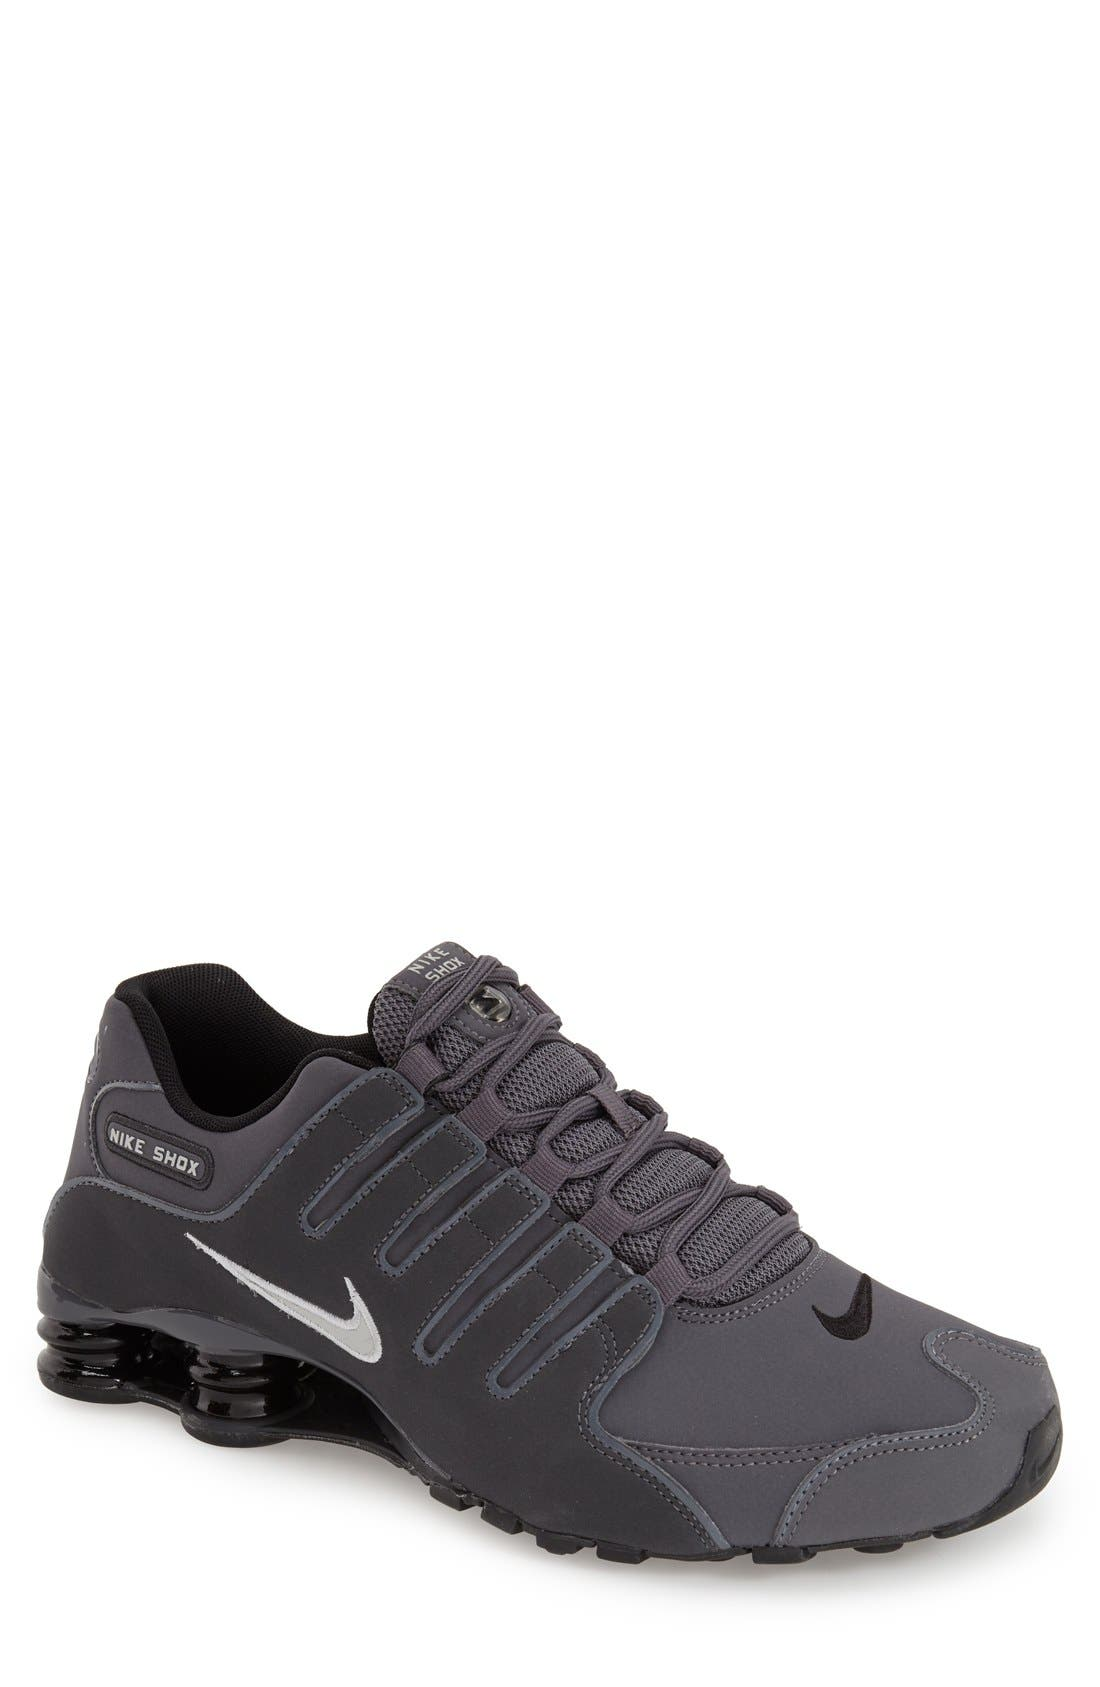 new arrival a61f5 75a47 ... where to buy nike shox mens wide width b5117 1e3c1